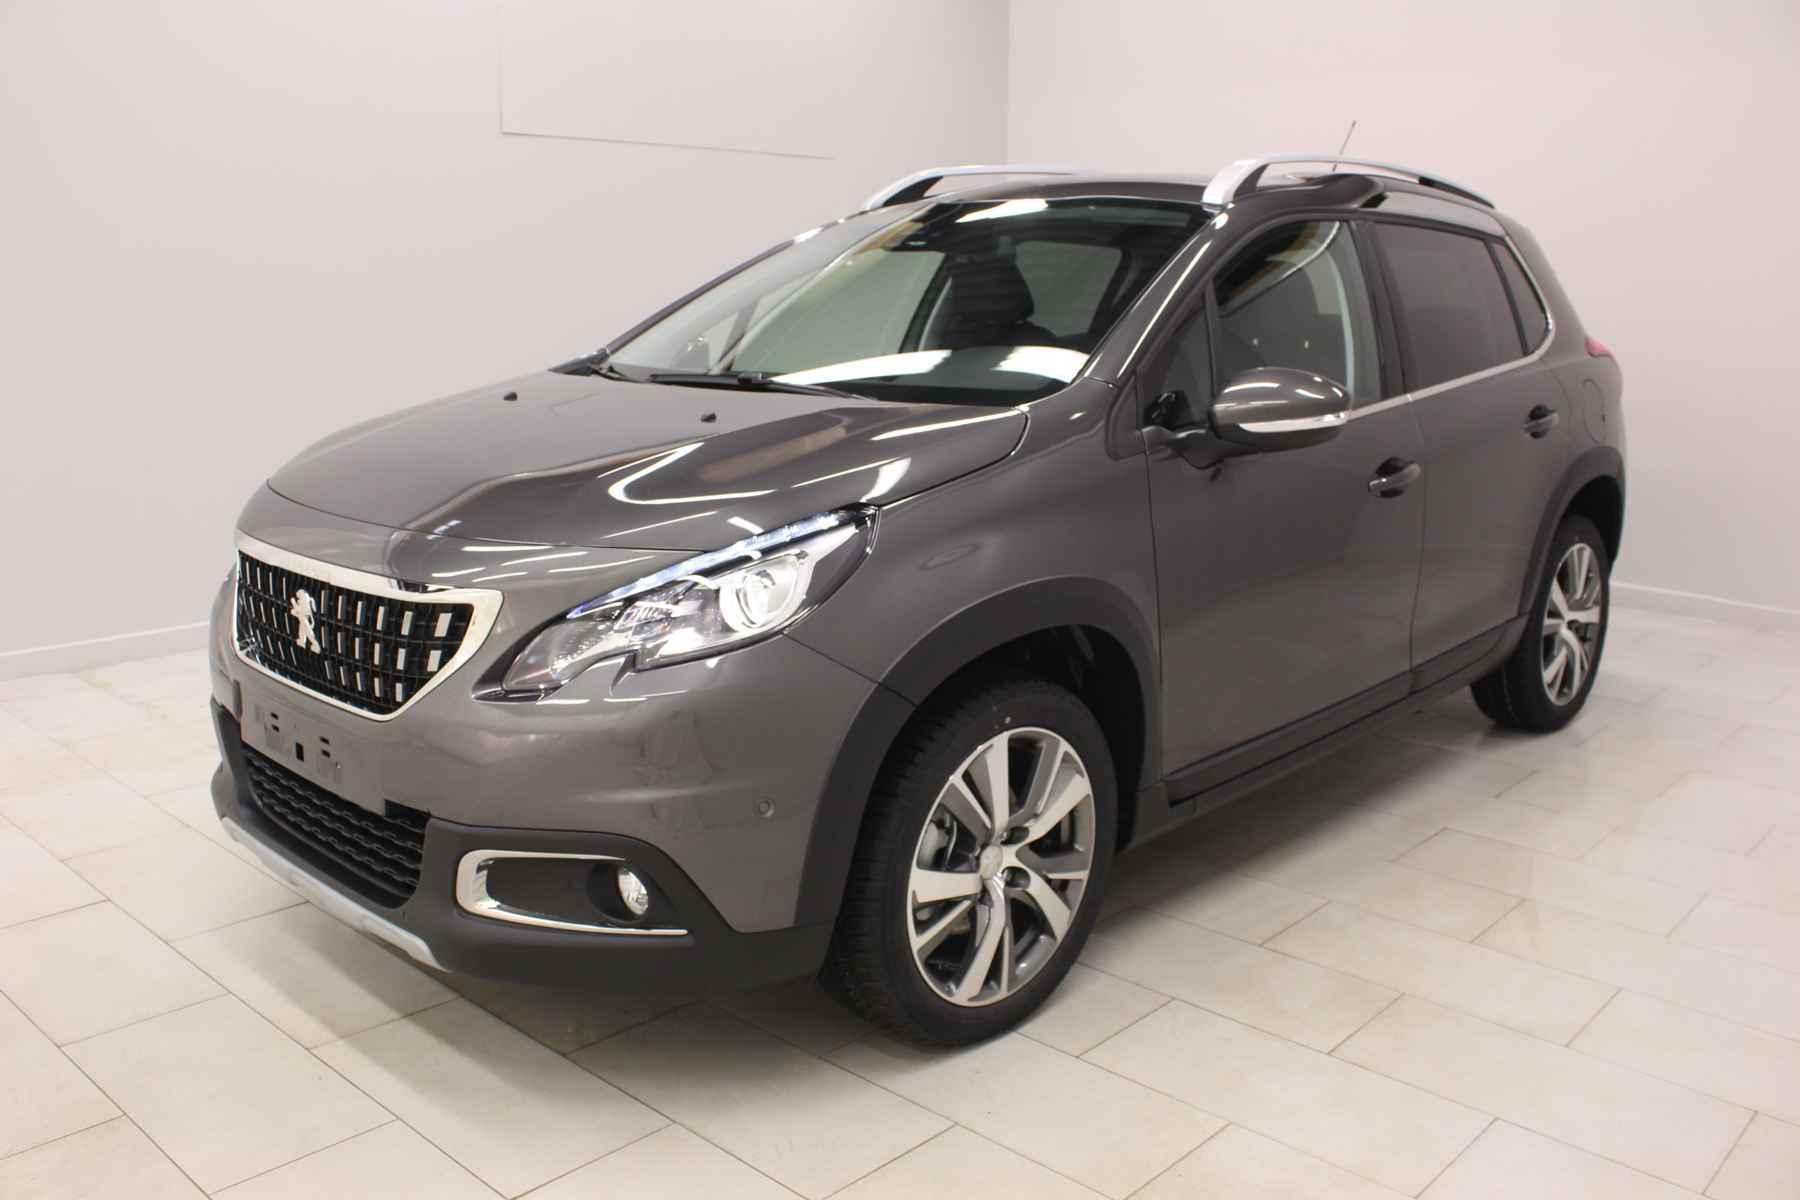 Photo Peugeot 2008 1.2 PureTech 130 Allure 2 Gris Platinium